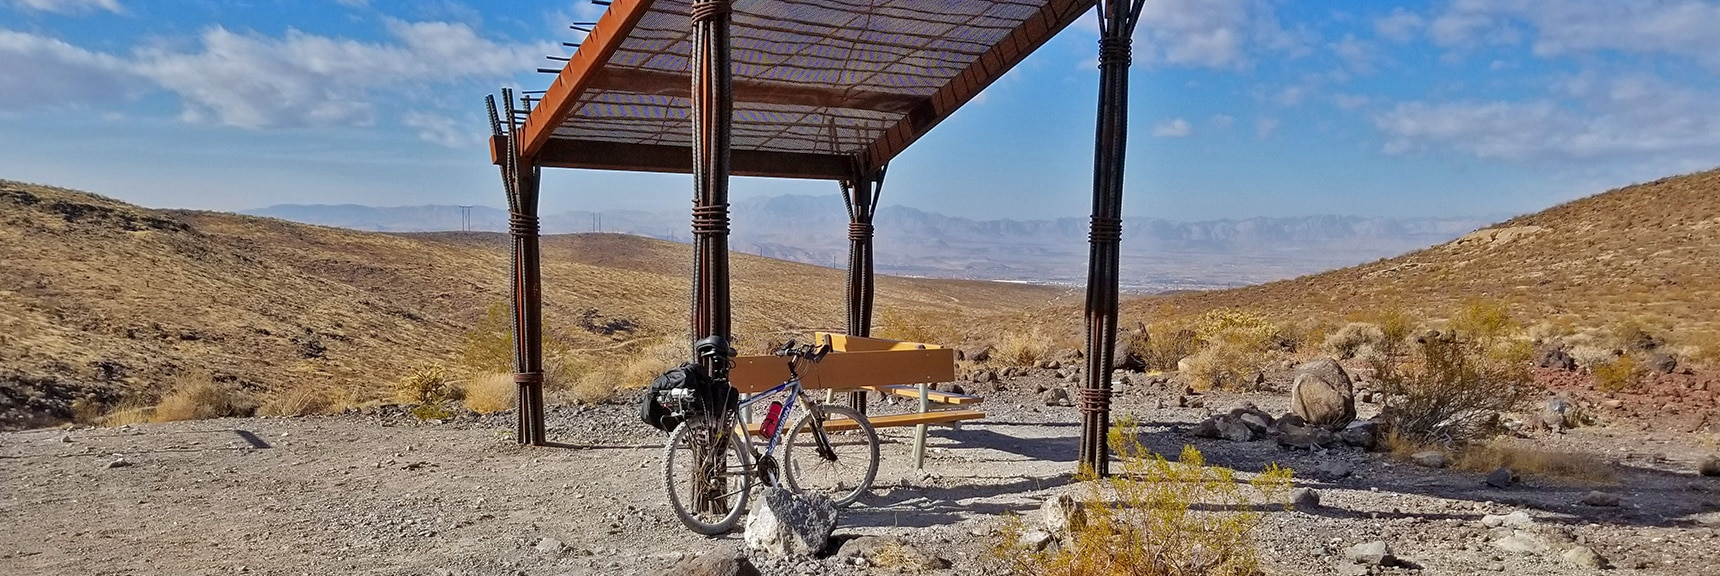 One of a Few Shelters Along the Trail   McCullough Hills Trail in Sloan Canyon National Conservation Area, Nevada